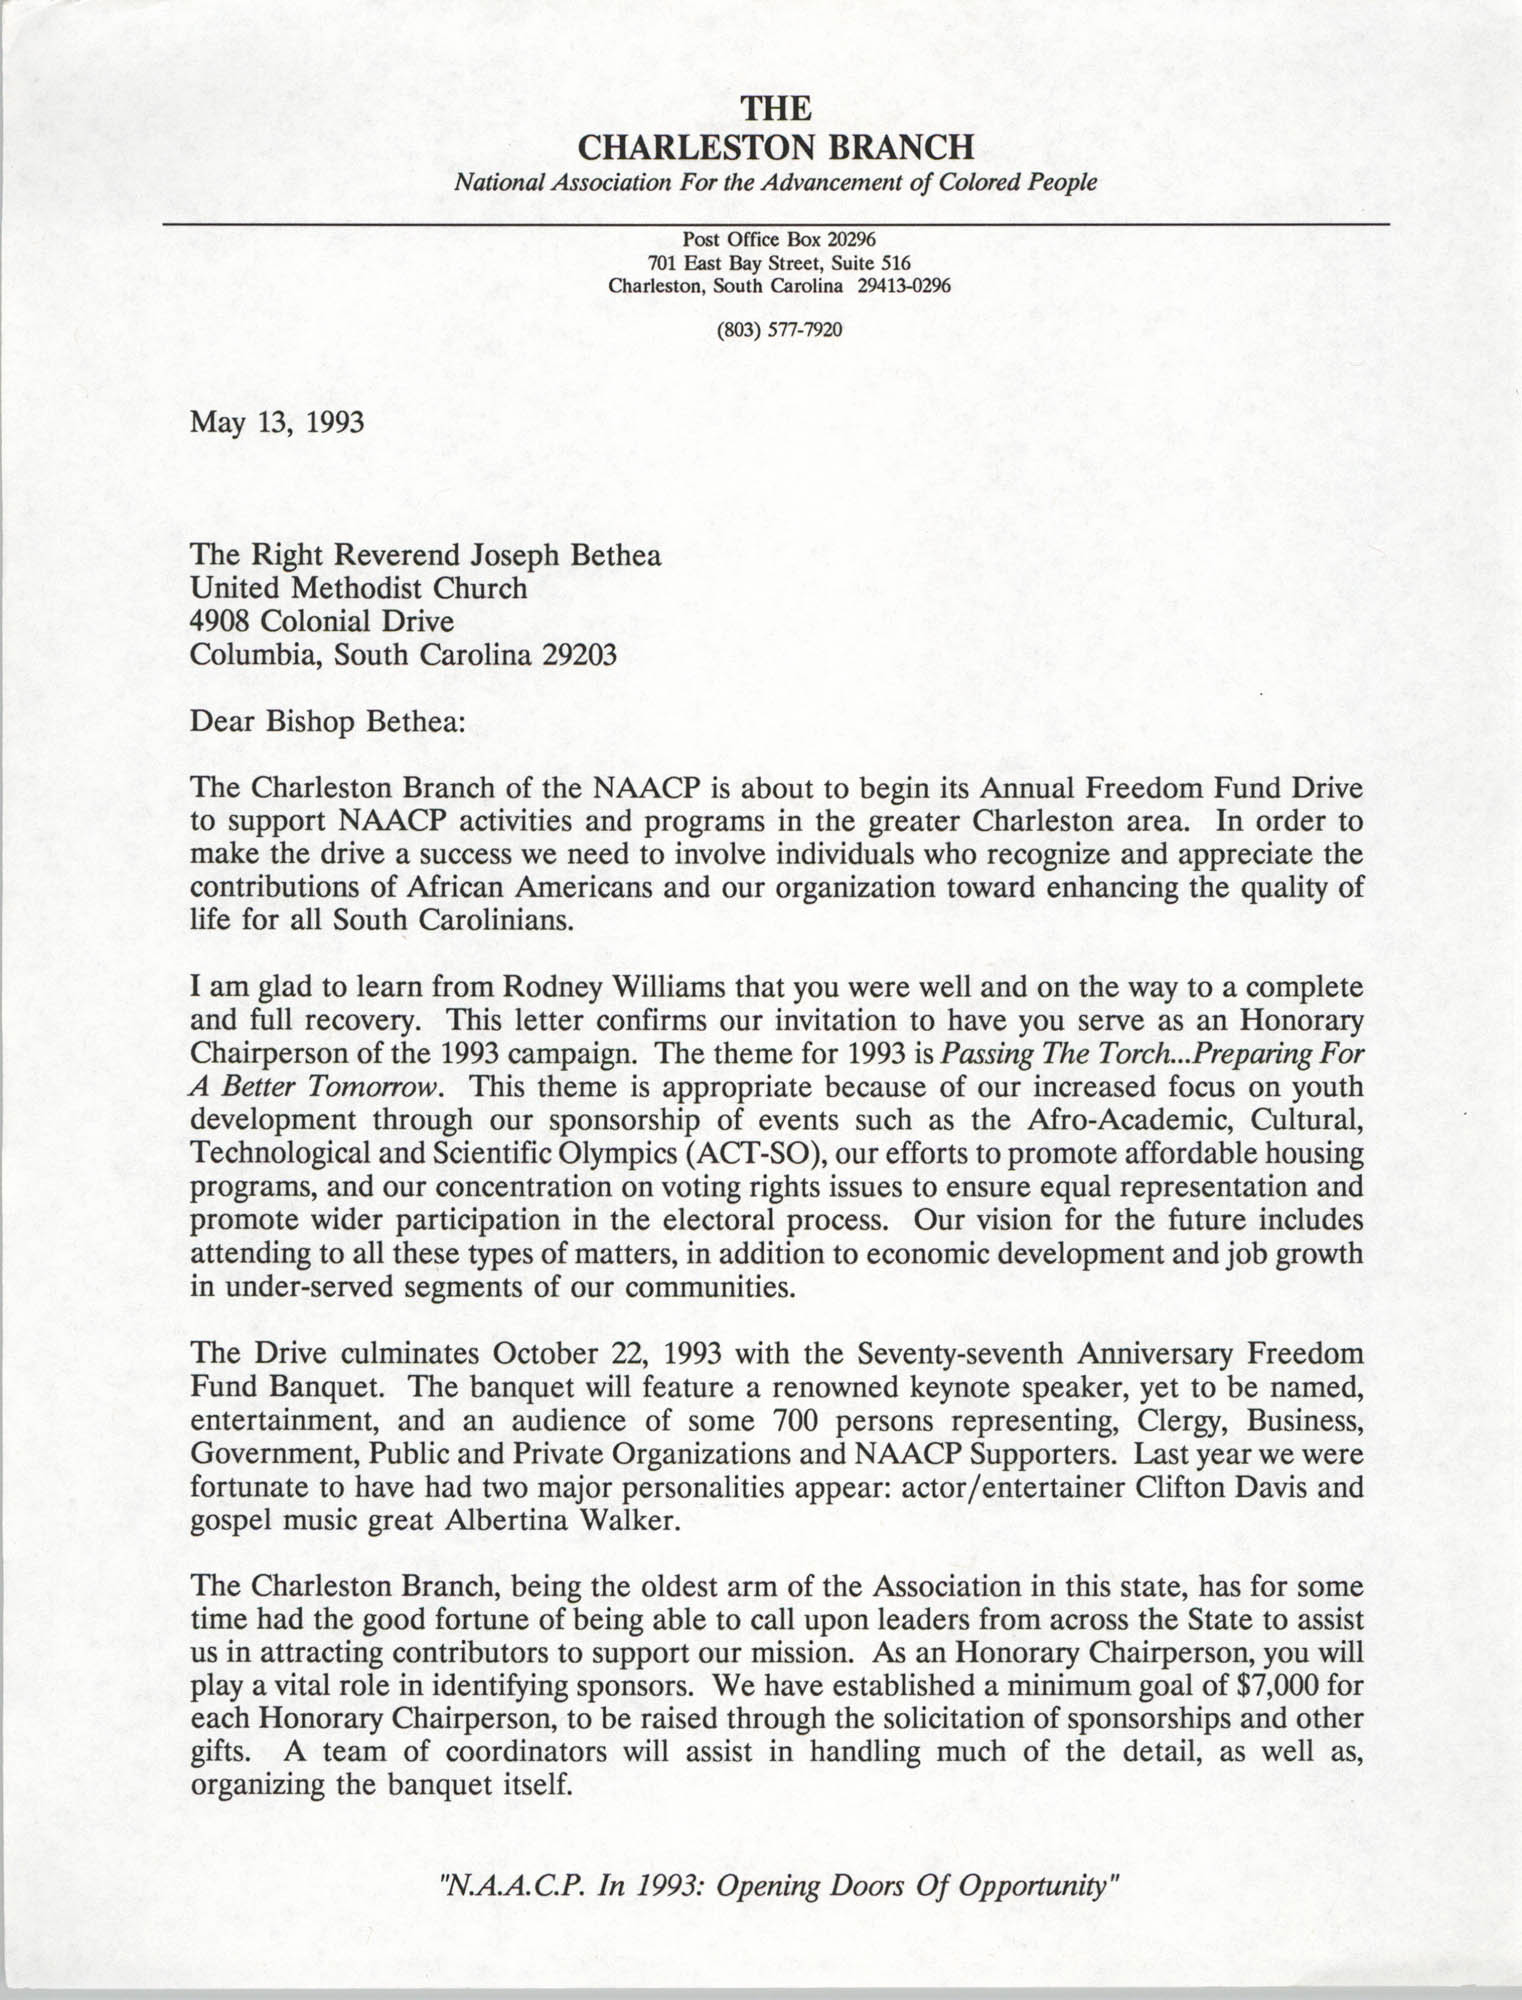 Letter from Dwight C. James to Reverend Joseph Bethea, May 13, 1993